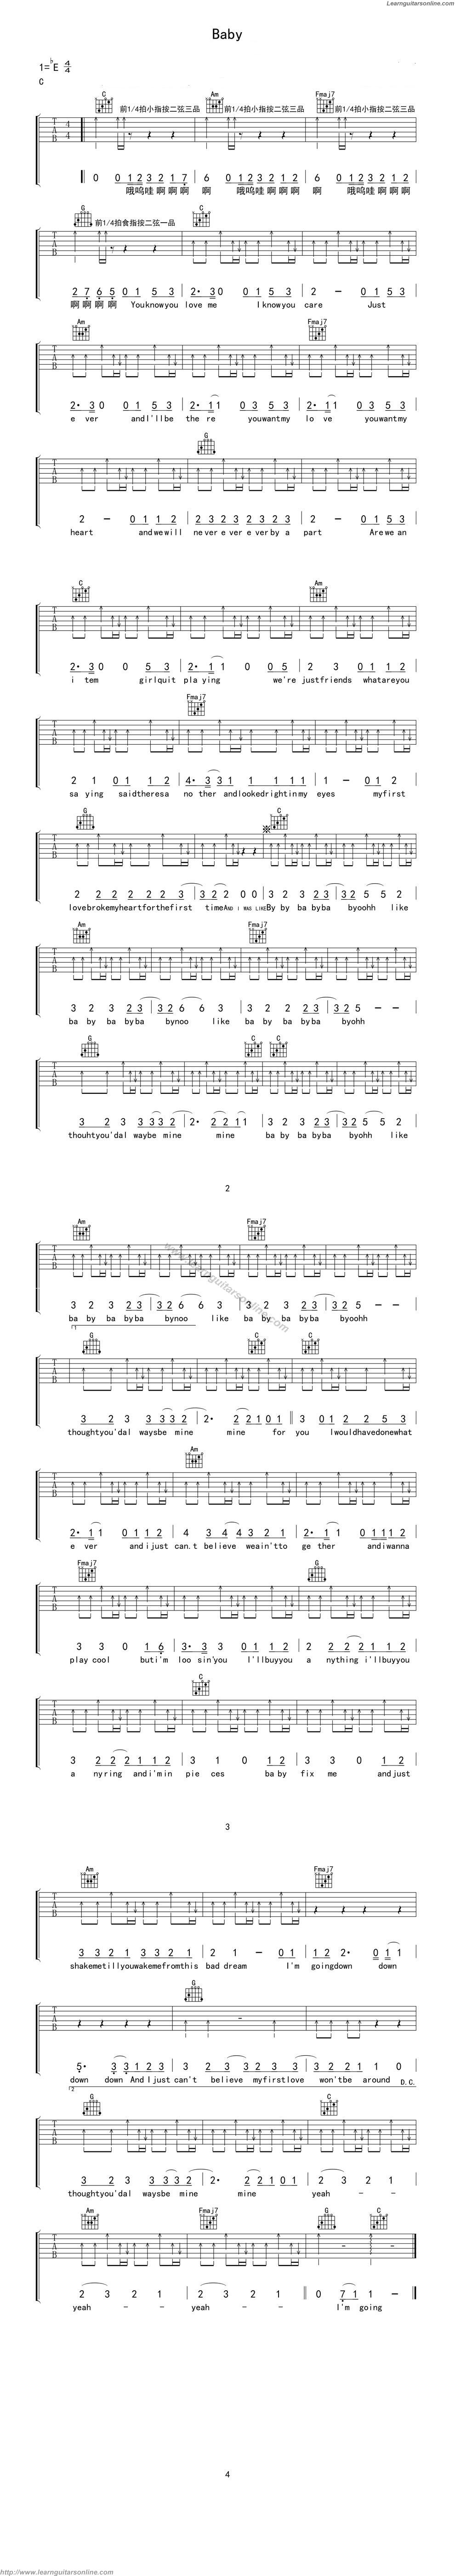 Baby by Justin Bieber Free Guitar Sheet Music, Tabs, Chords, Notes, Solo, Scores